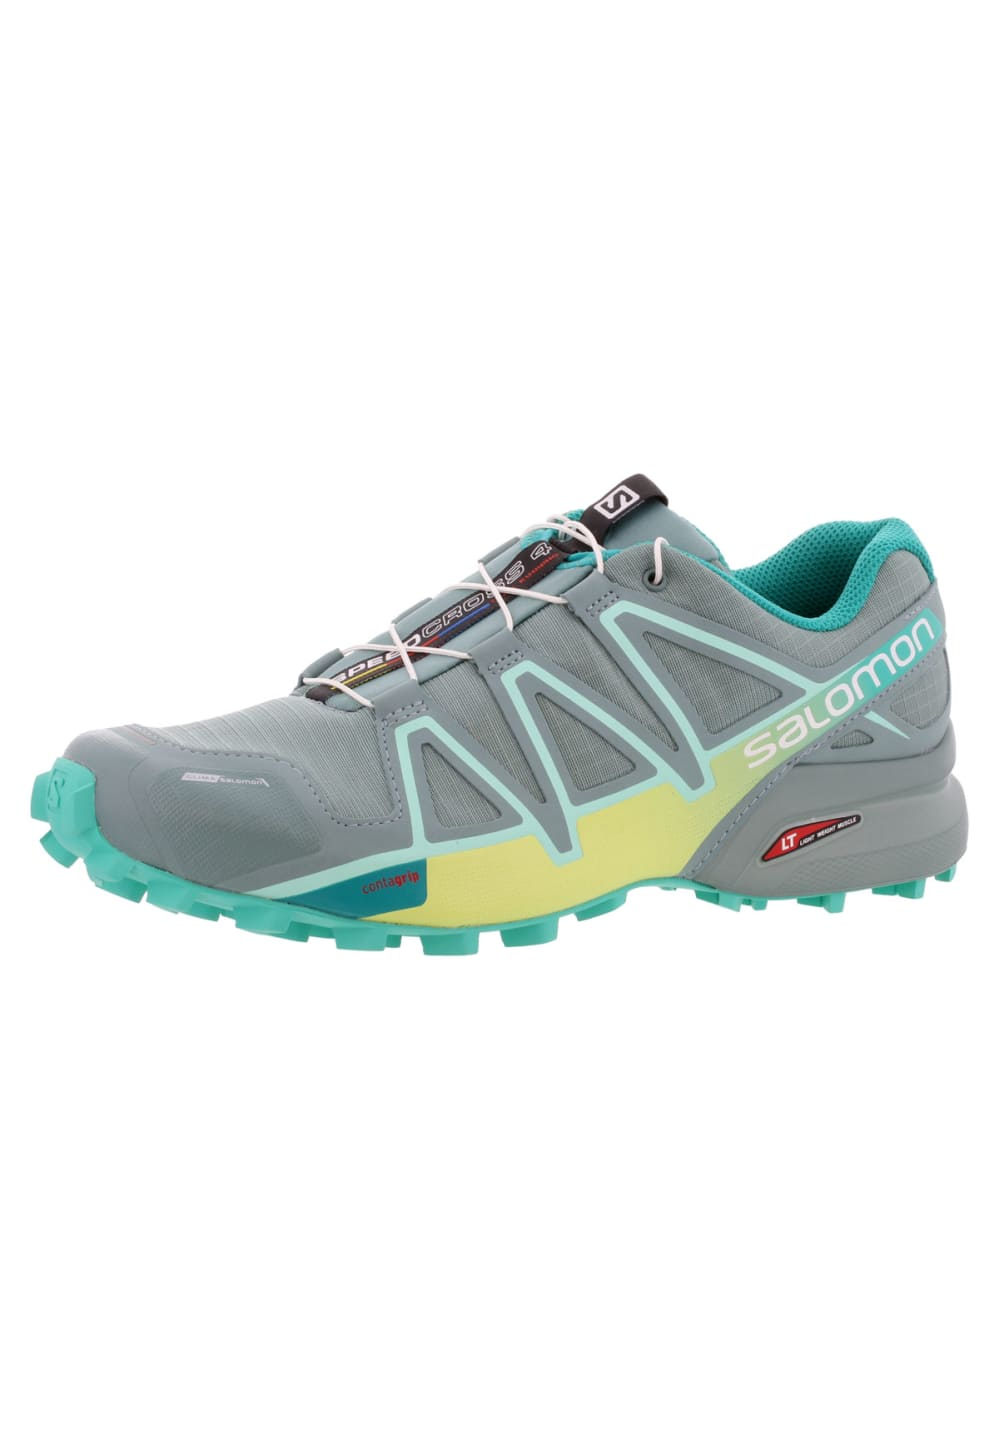 Salomon Shoes For Women Speedcross Grey Running Cs 4 ybYg7f6